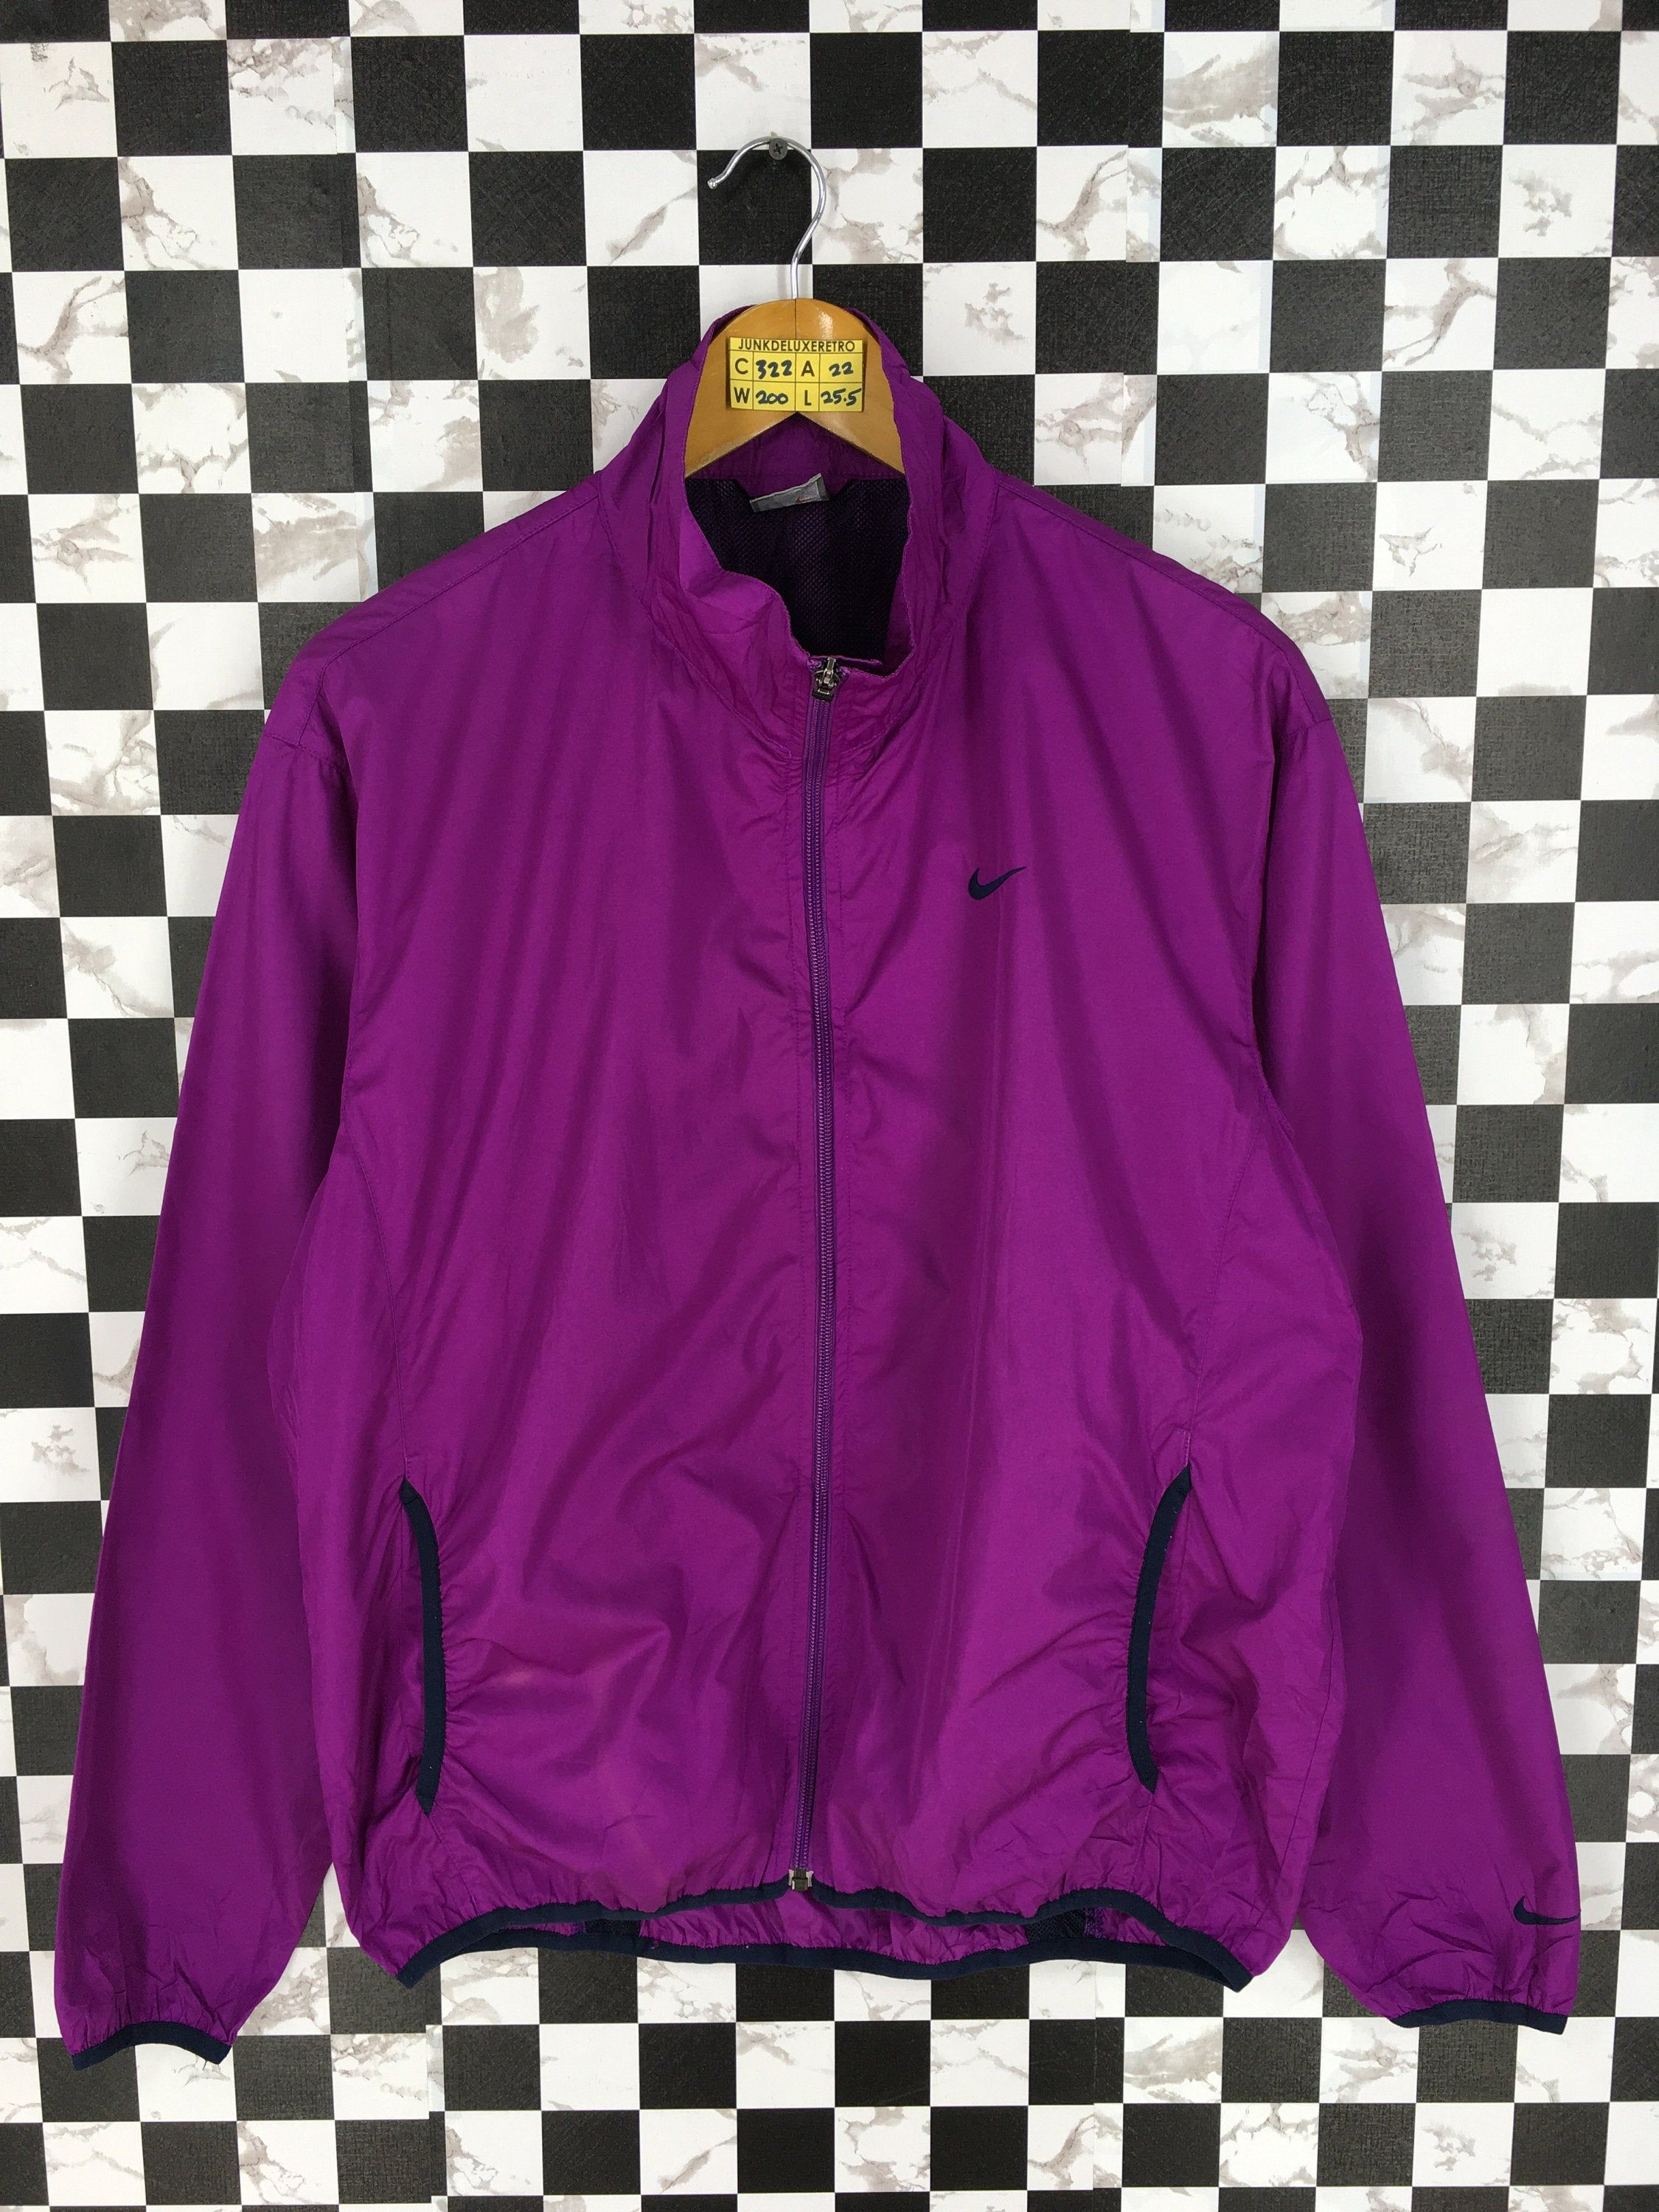 Vintage 1990 S Nike Jacket Windbreaker Large Women Nike Acg Sport Training Athletic Nike Swoosh Purple Sportswear Windrunner Jacket Size L